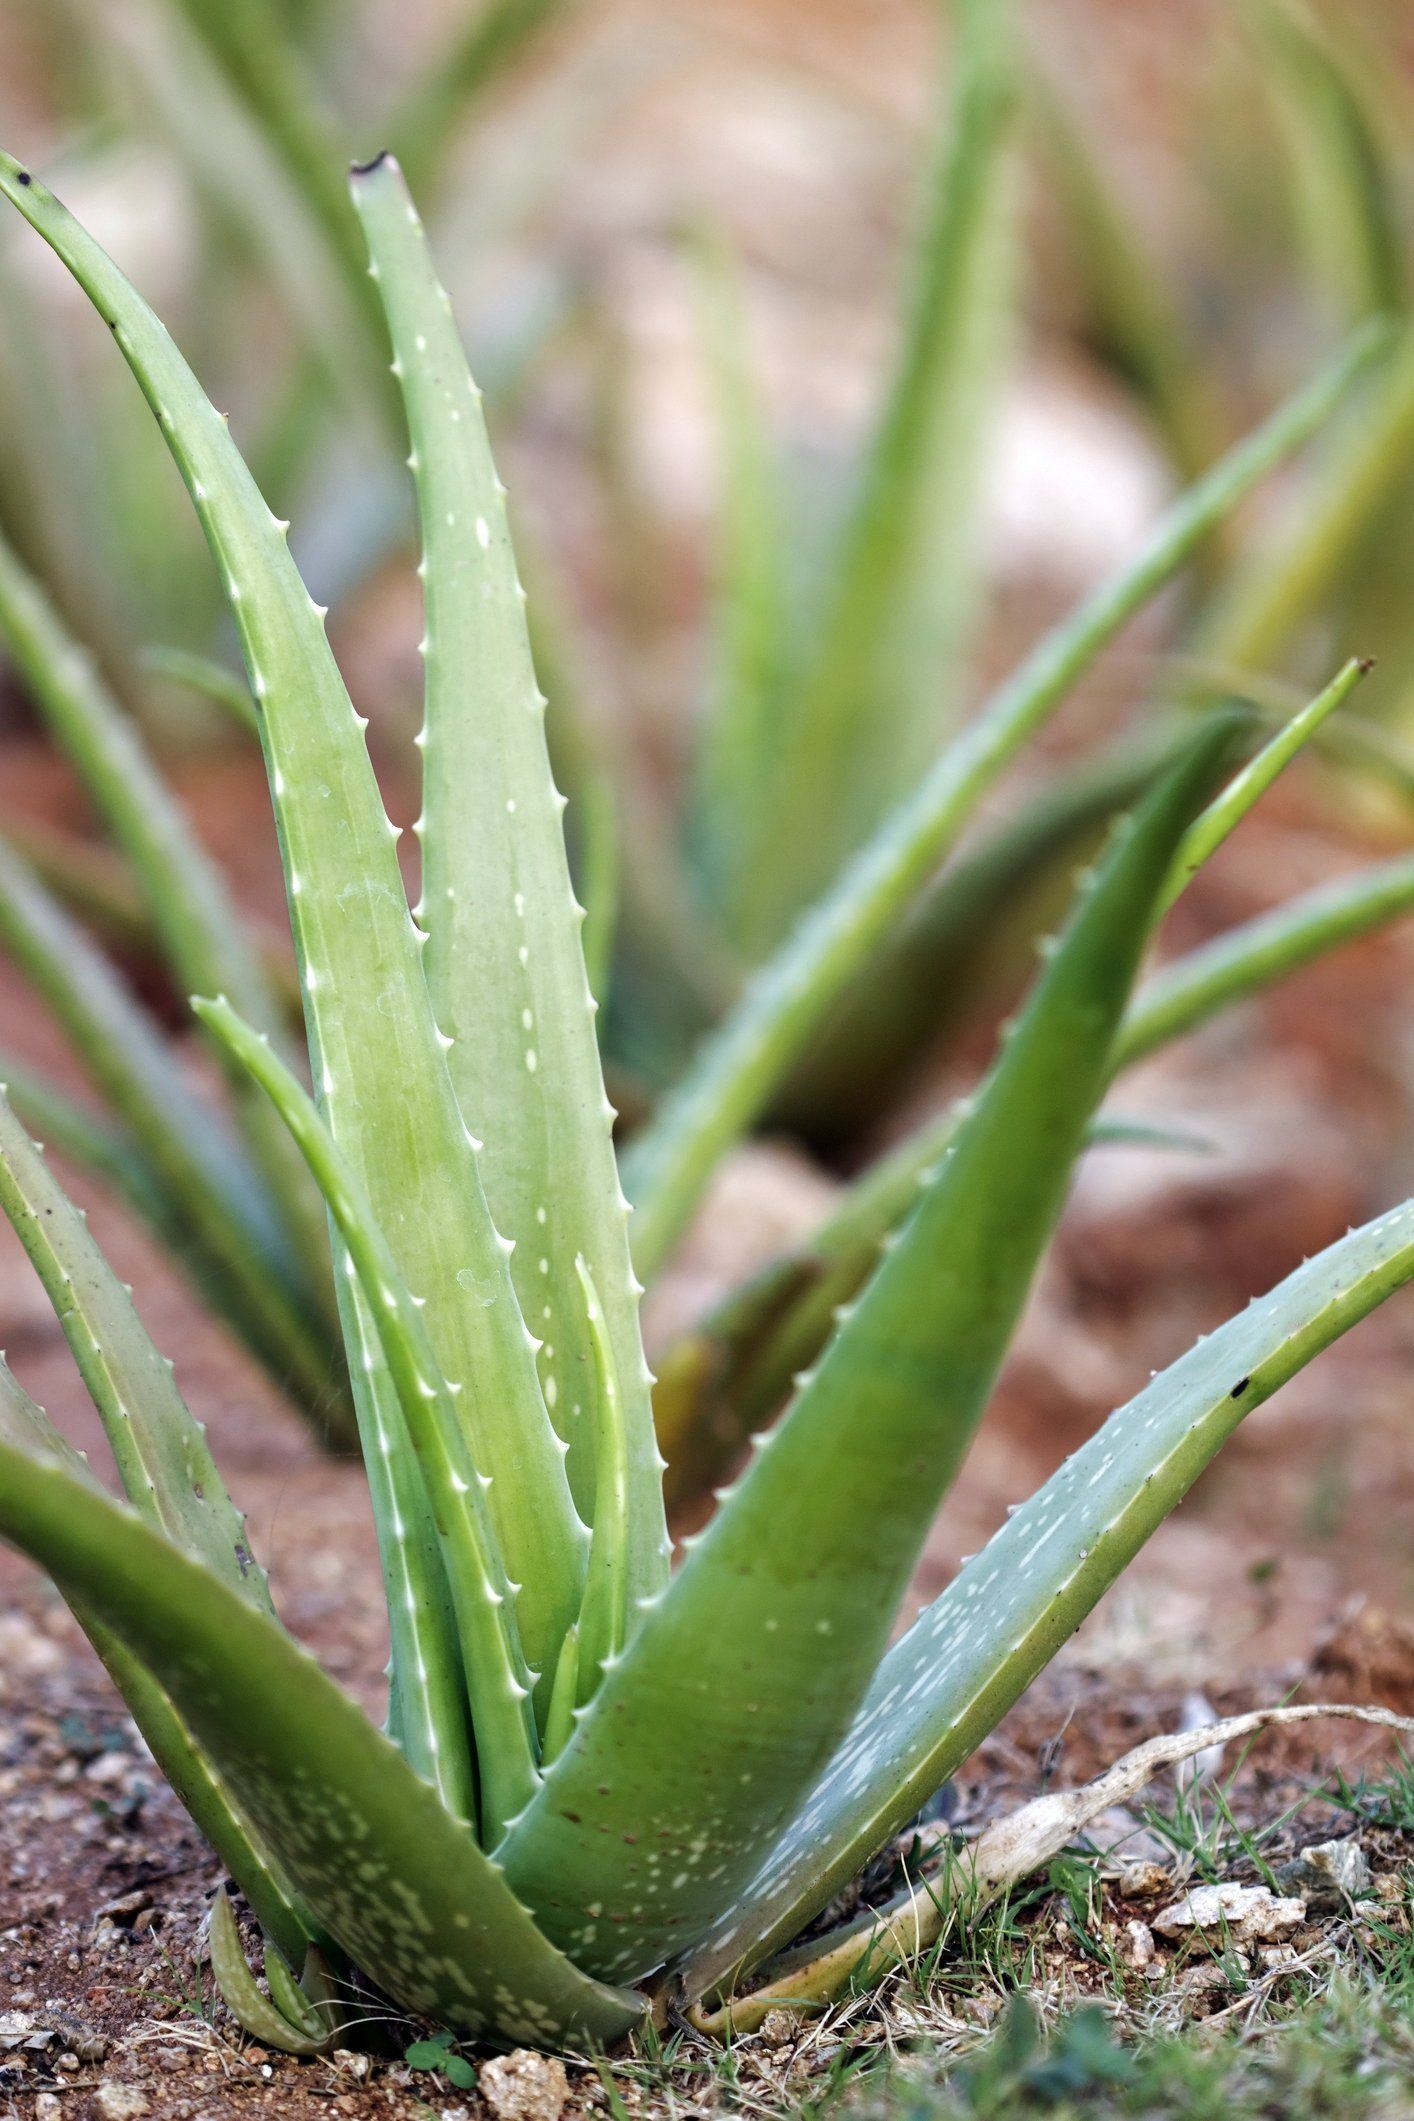 Aloe vera plants best tips for growing care - Cultiver aloe vera ...